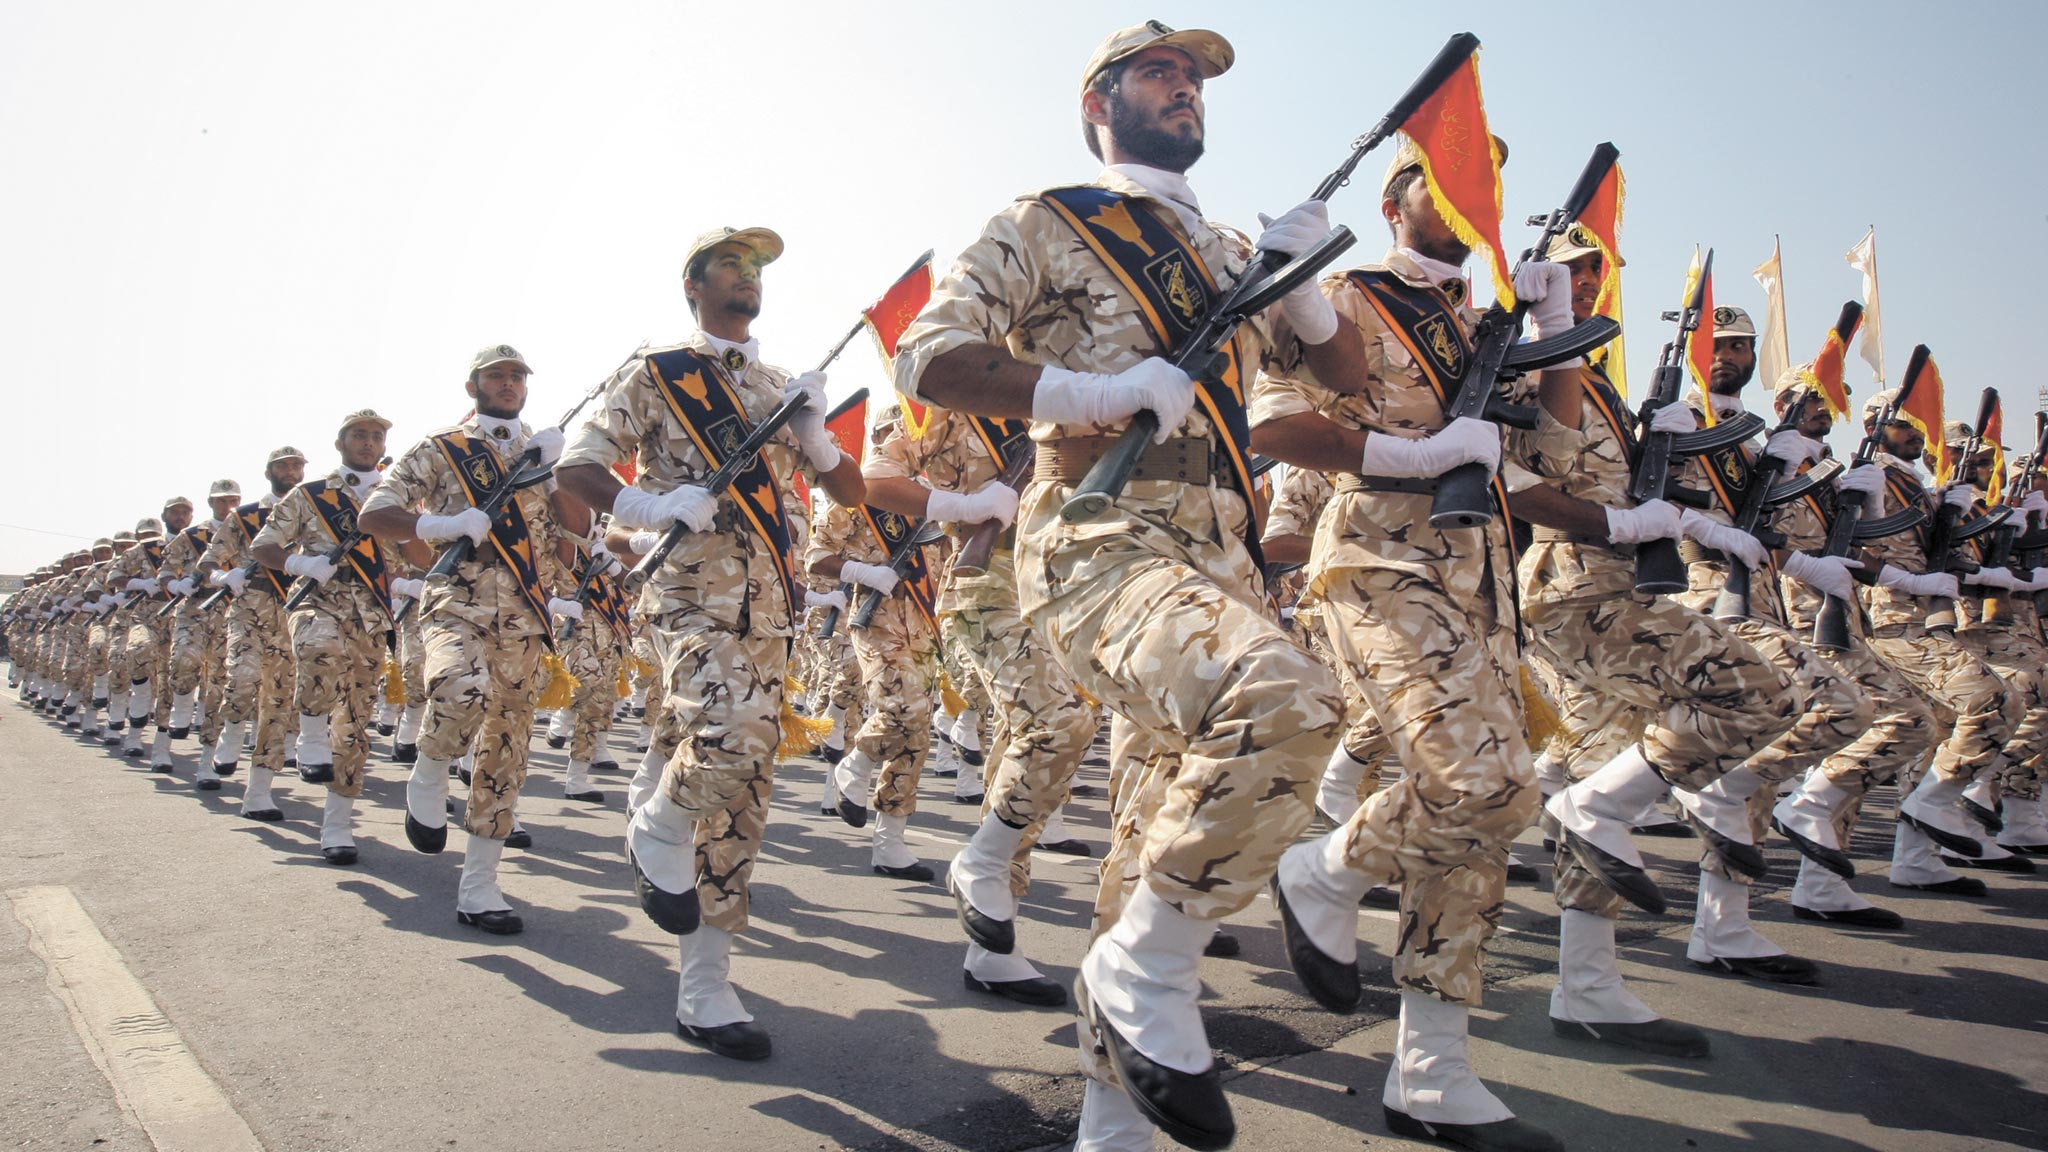 Iran's Islamic Revolutionary Guards Corps: a deep insight into Iran's most powerful institution